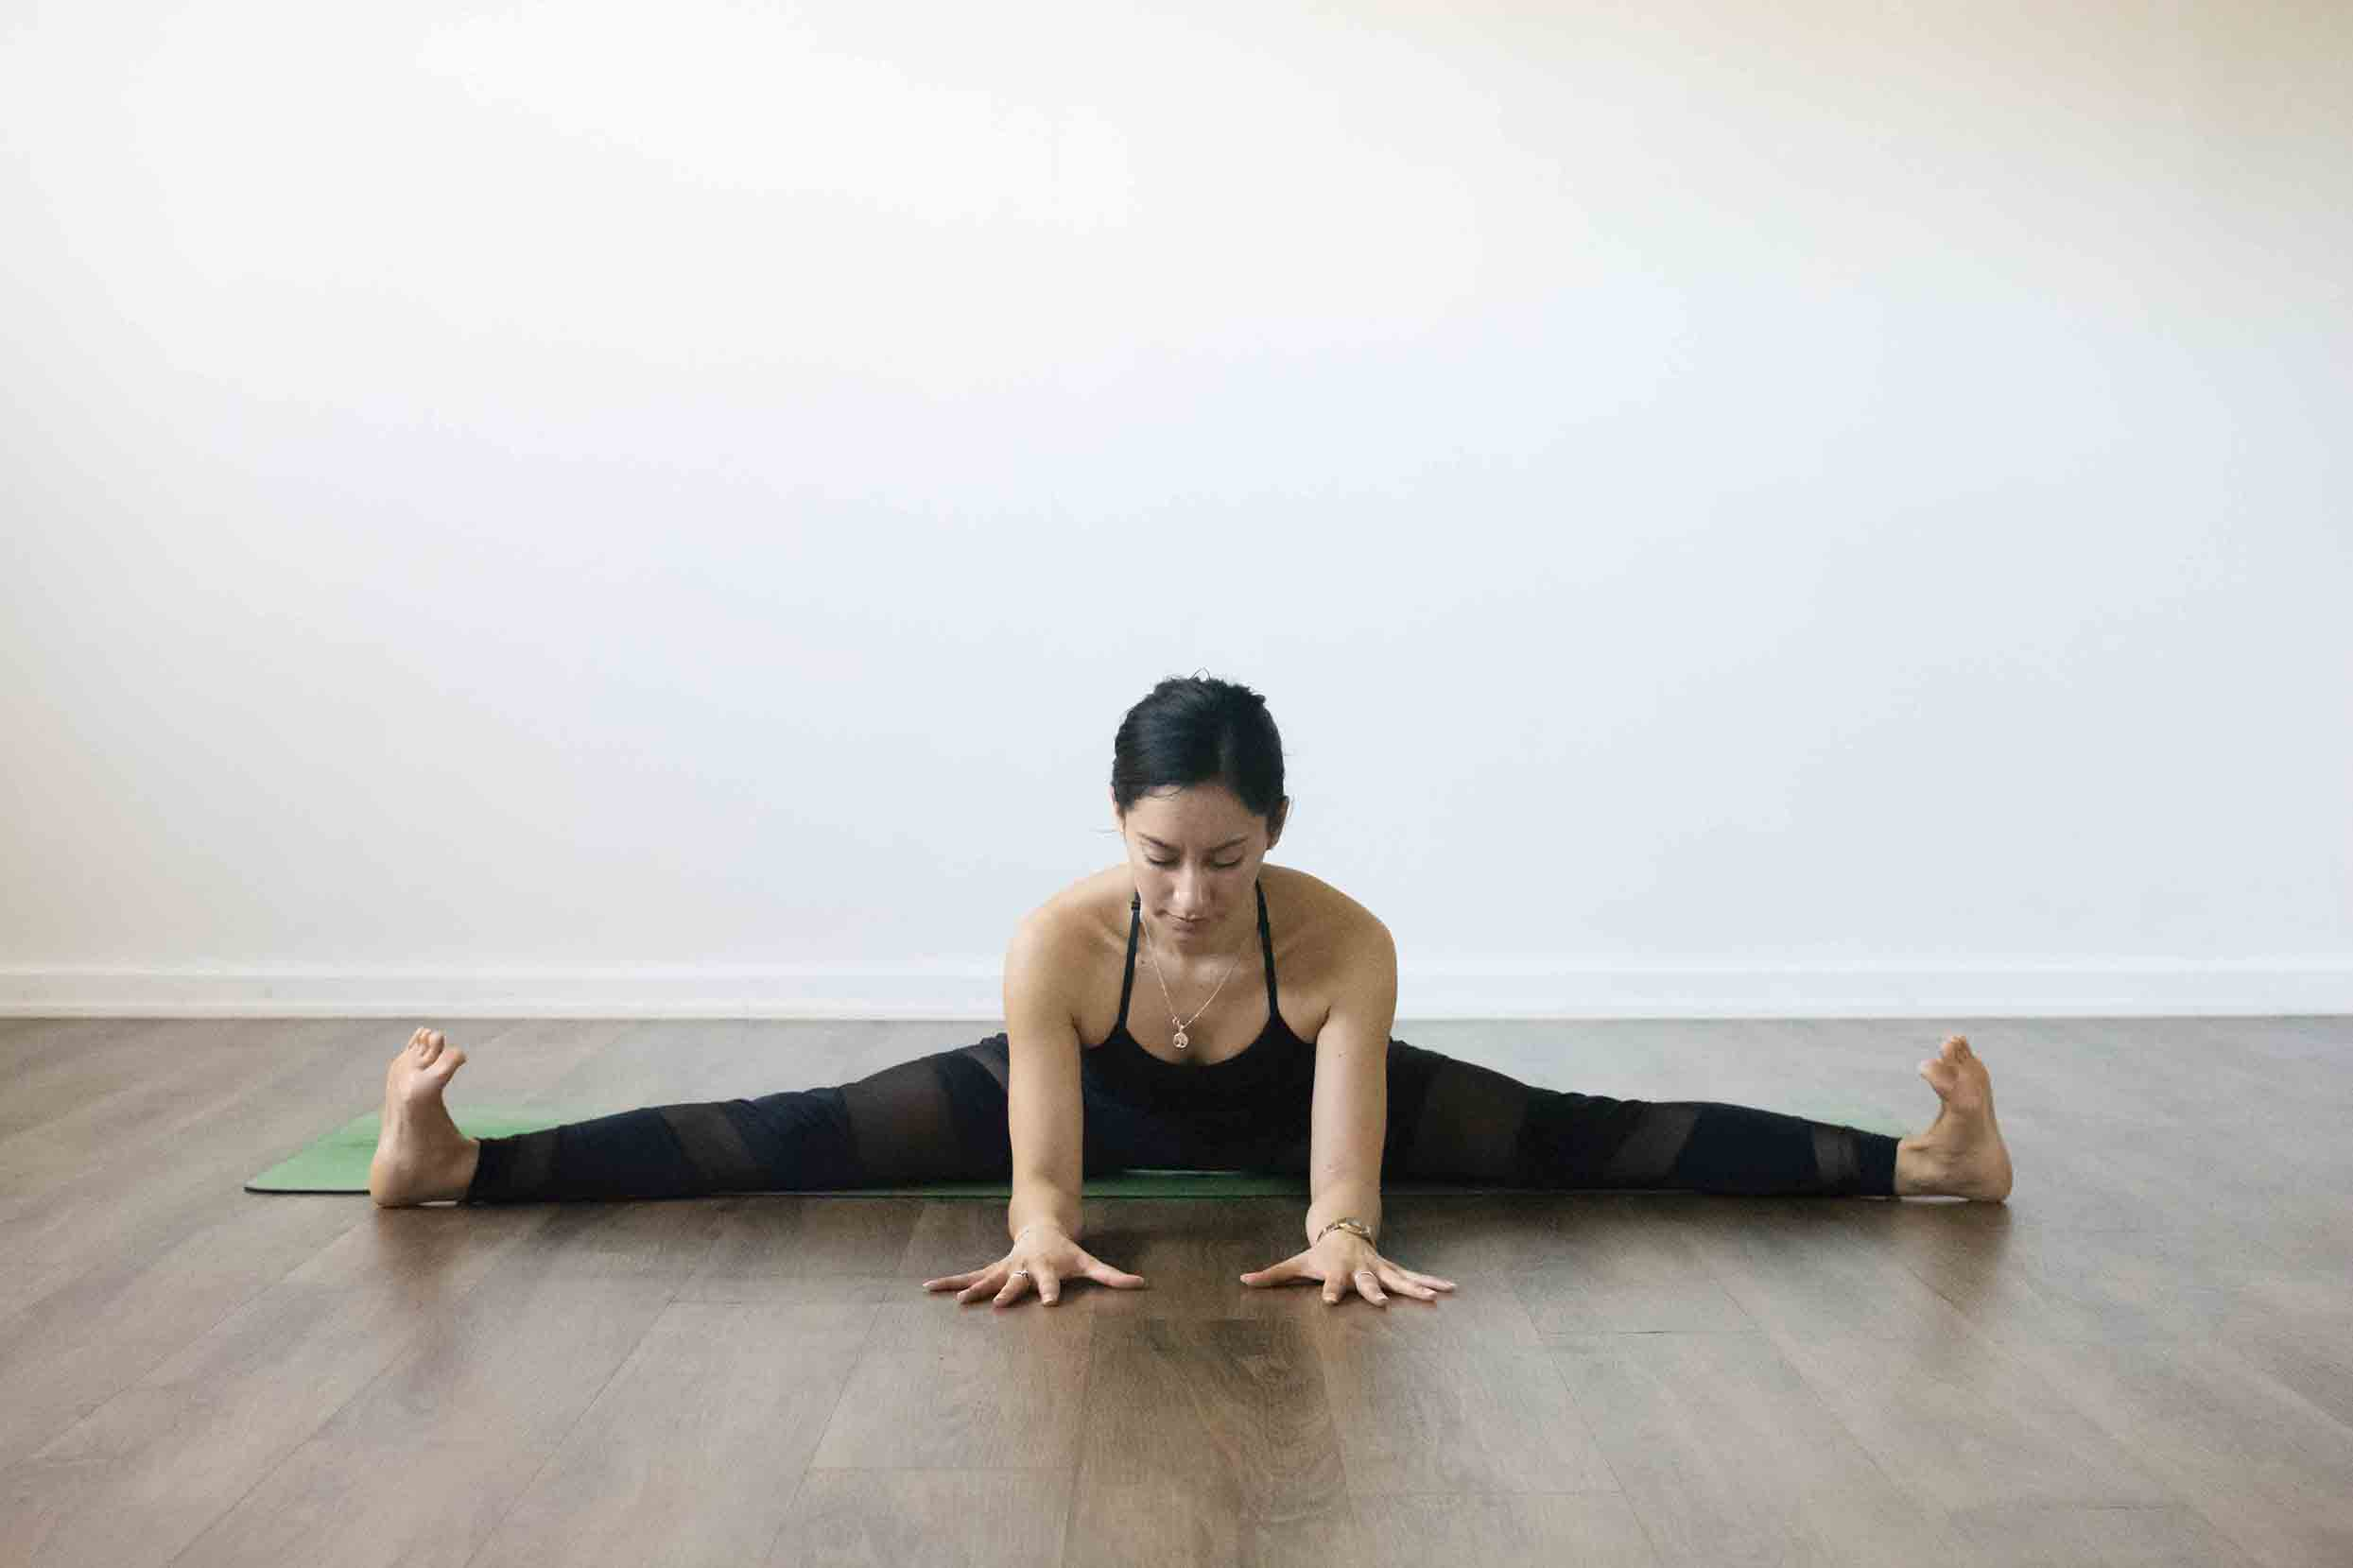 Upavistha Konasana - Wide-Angle Seated Forward Bend Pose - YOGATEKET